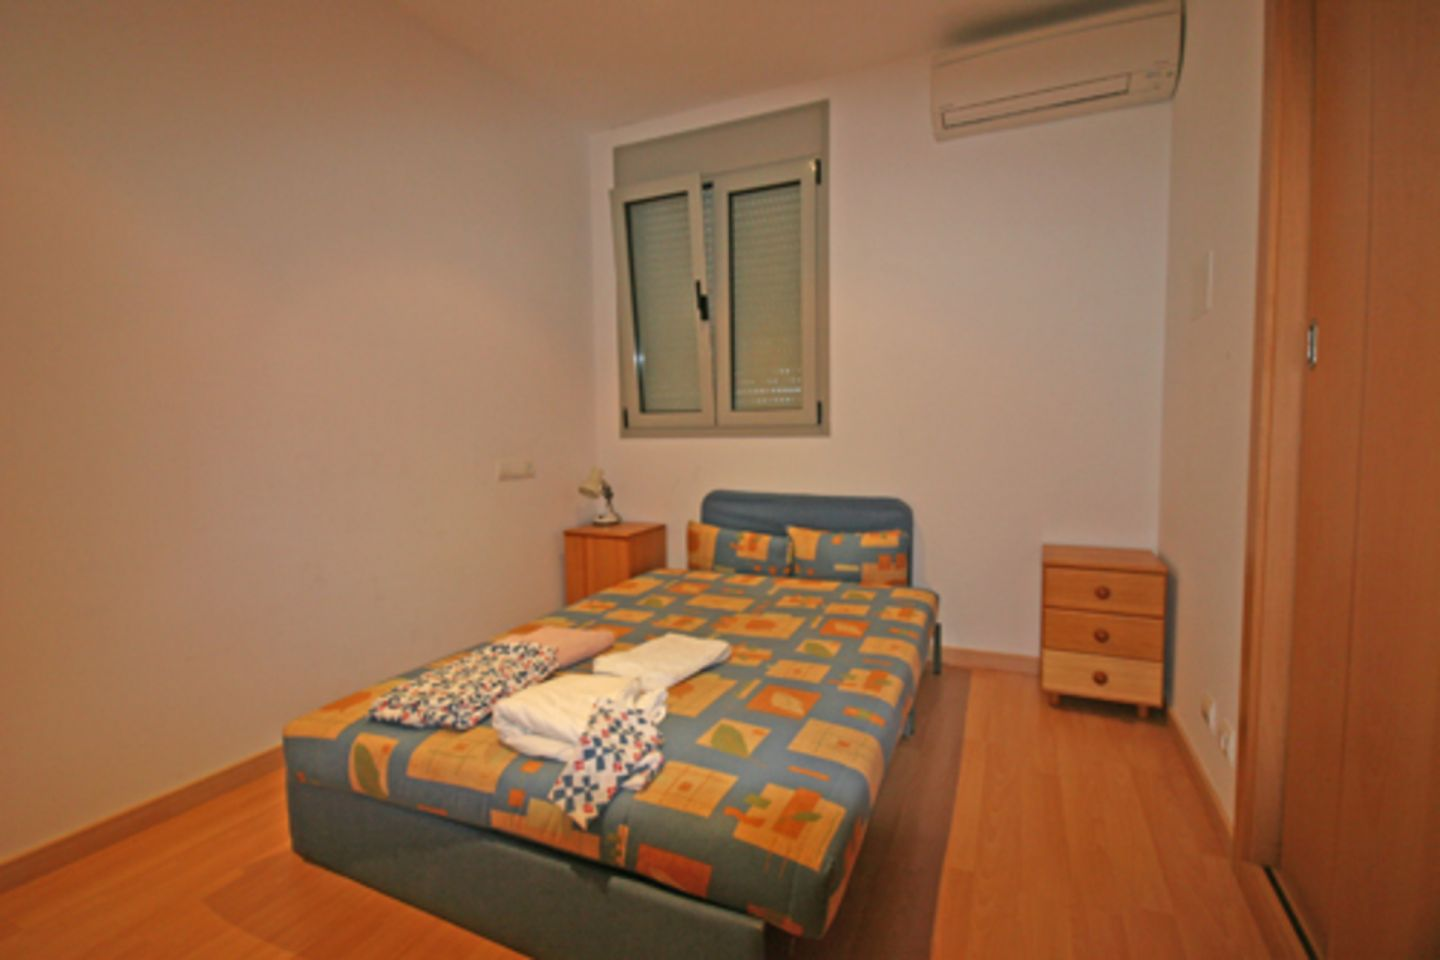 2 Bed Apartment for sale in PUERTO POLLENSA 7